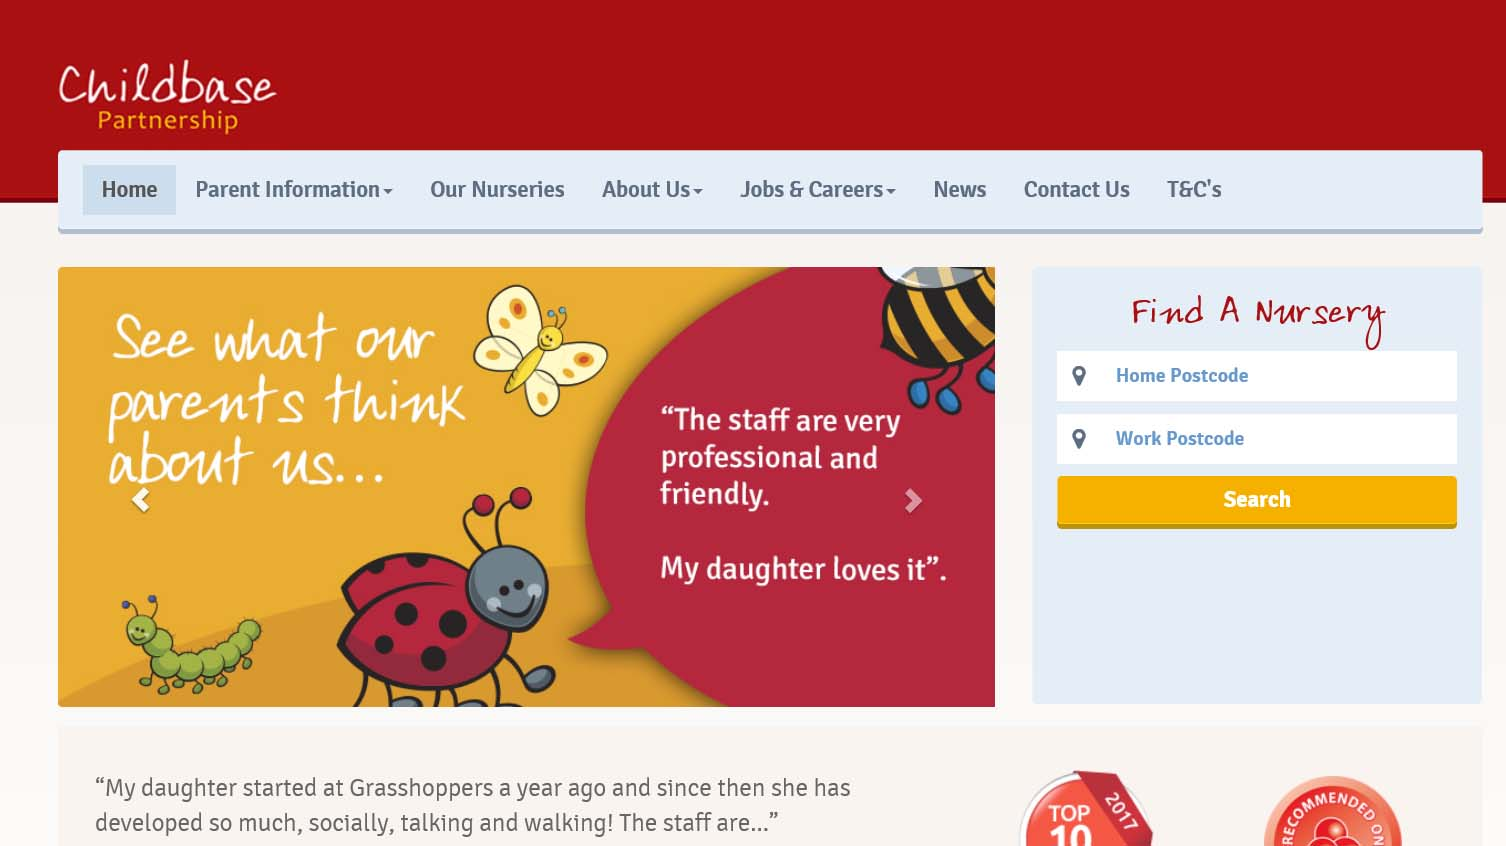 An Example of the 'Childbase Partnership' Website